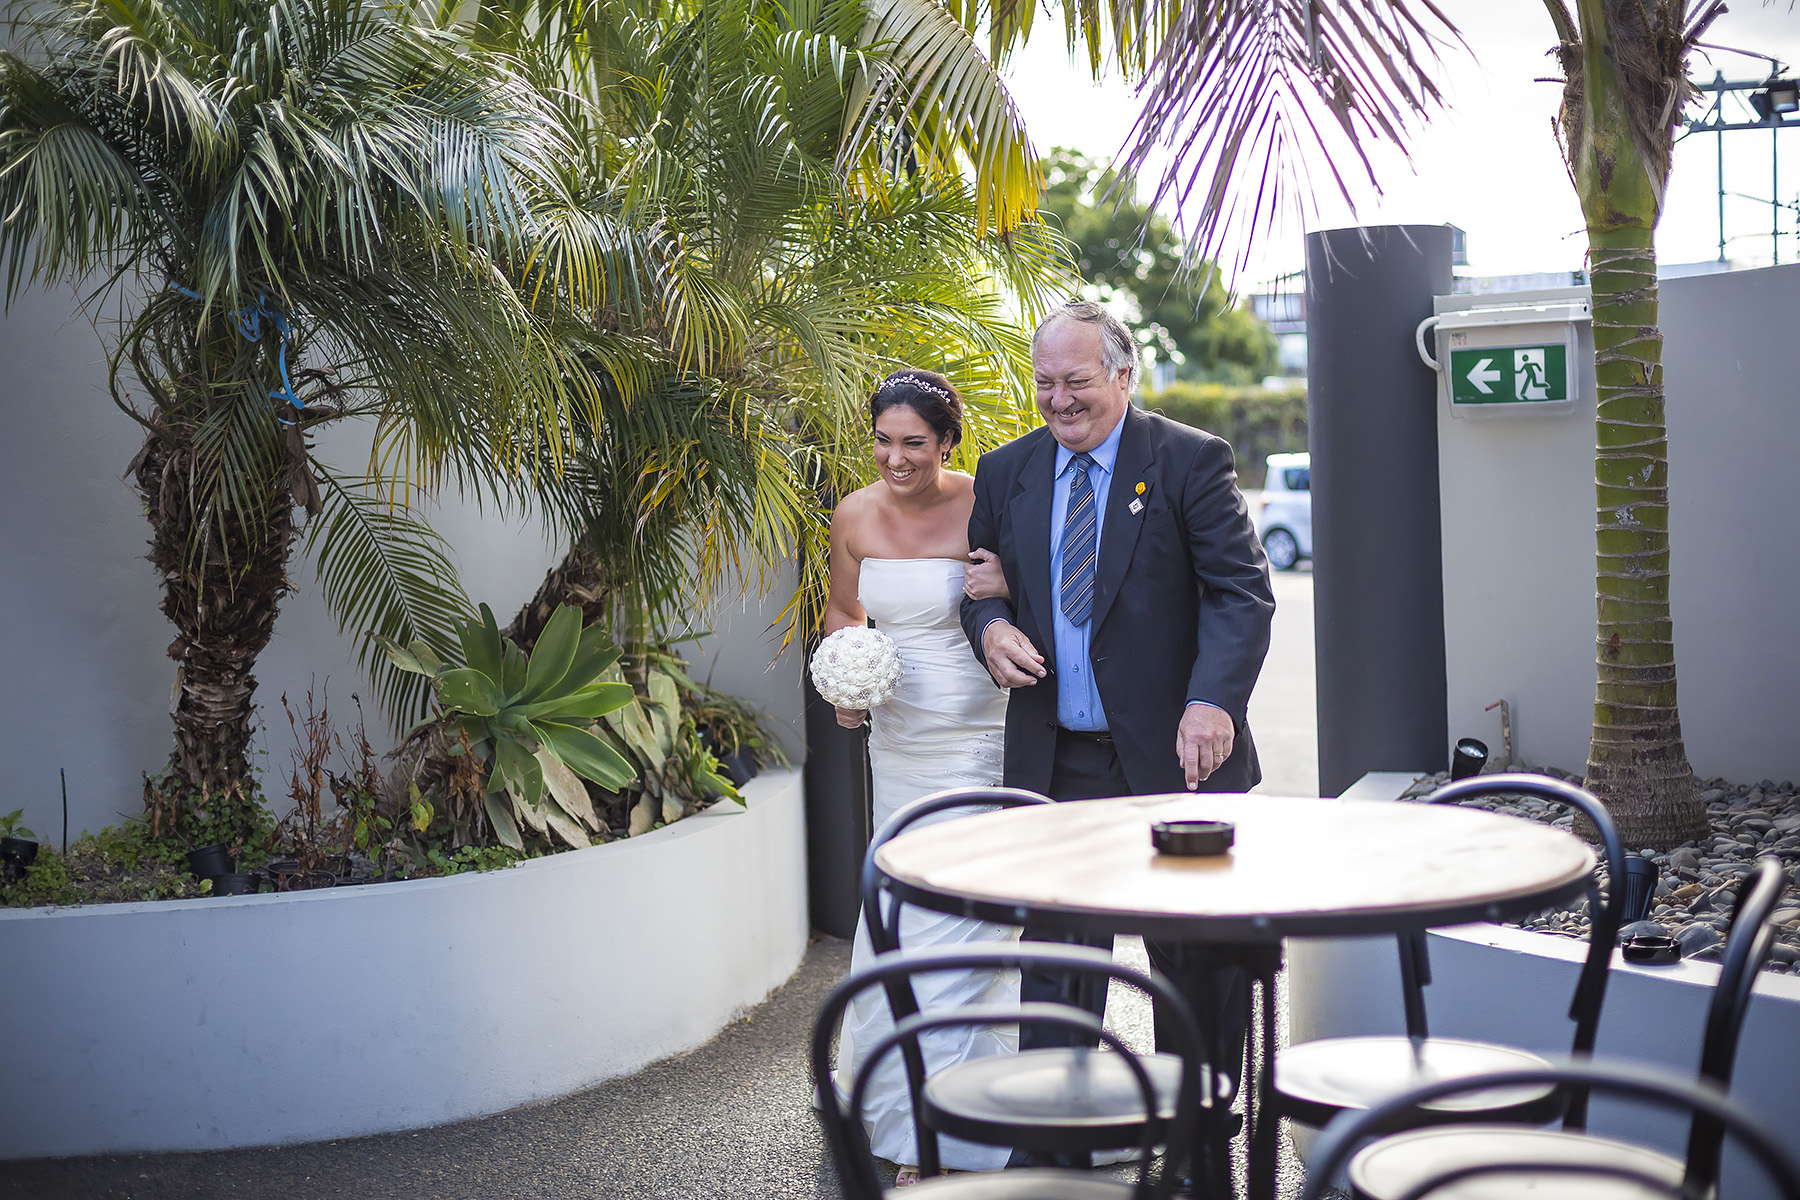 Kiwi Bride and her father Auckland